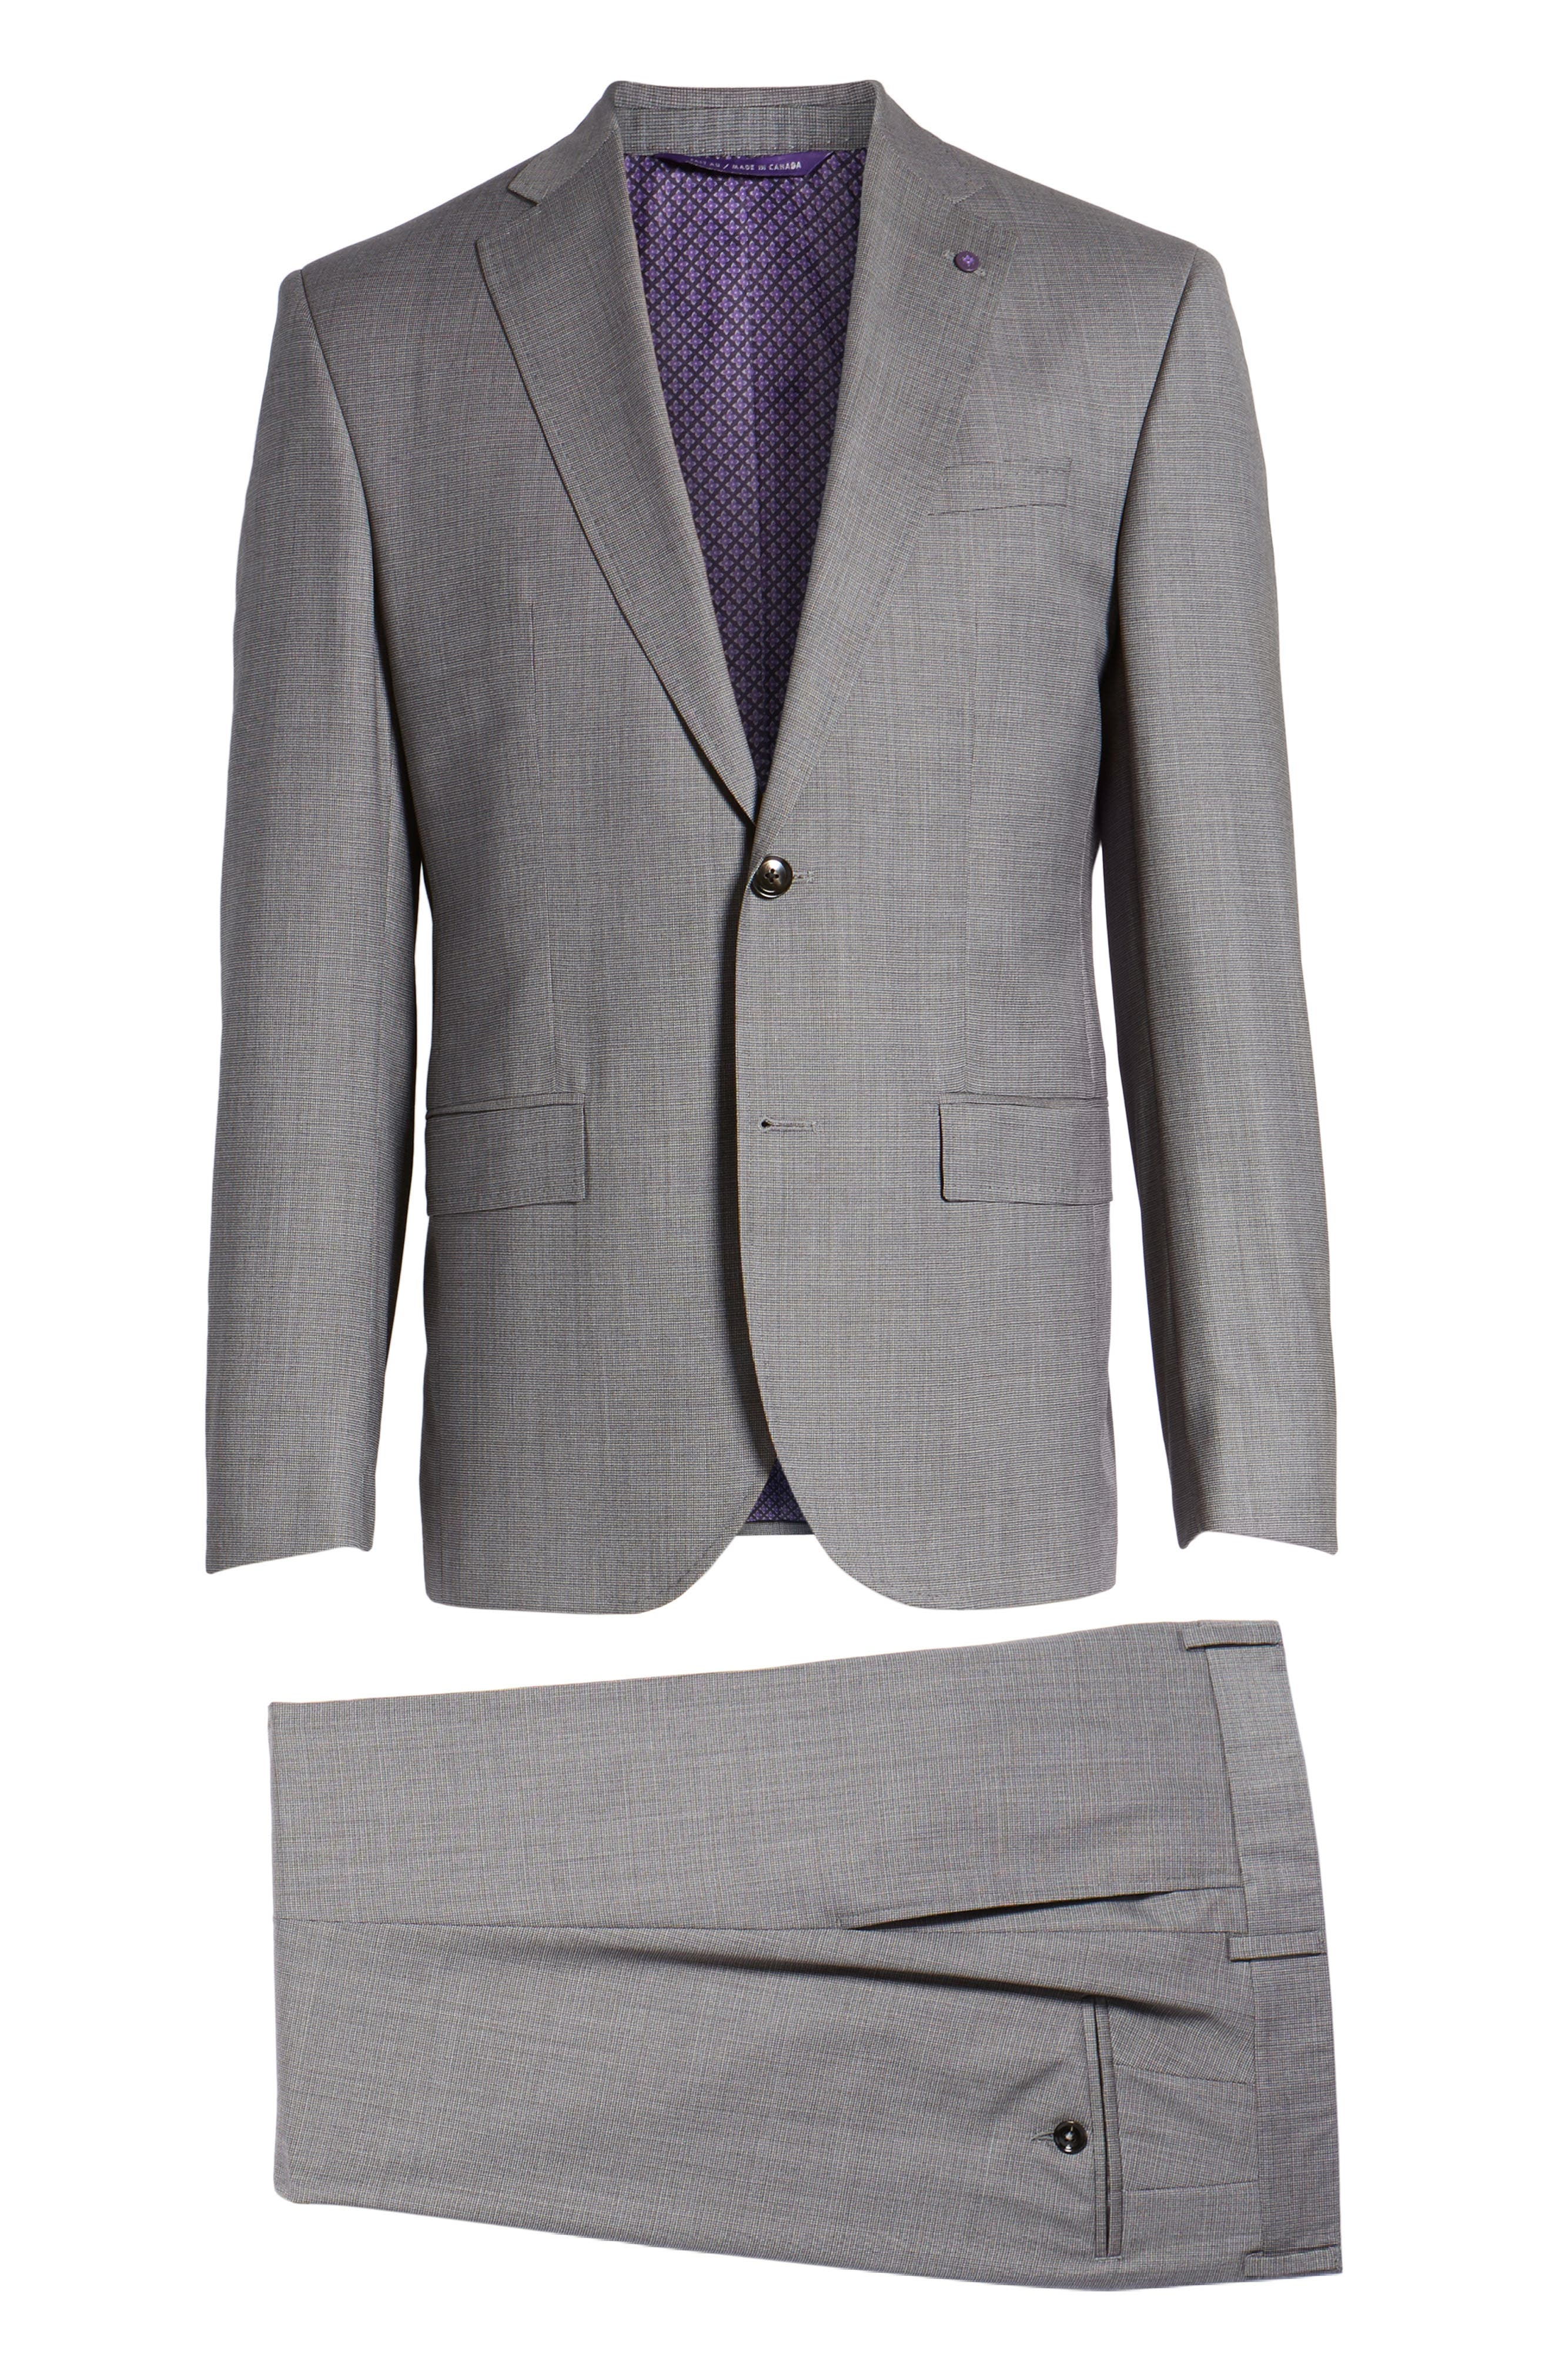 Roger Extra Slim Fit Solid Wool Suit,                             Alternate thumbnail 8, color,                             Taupe